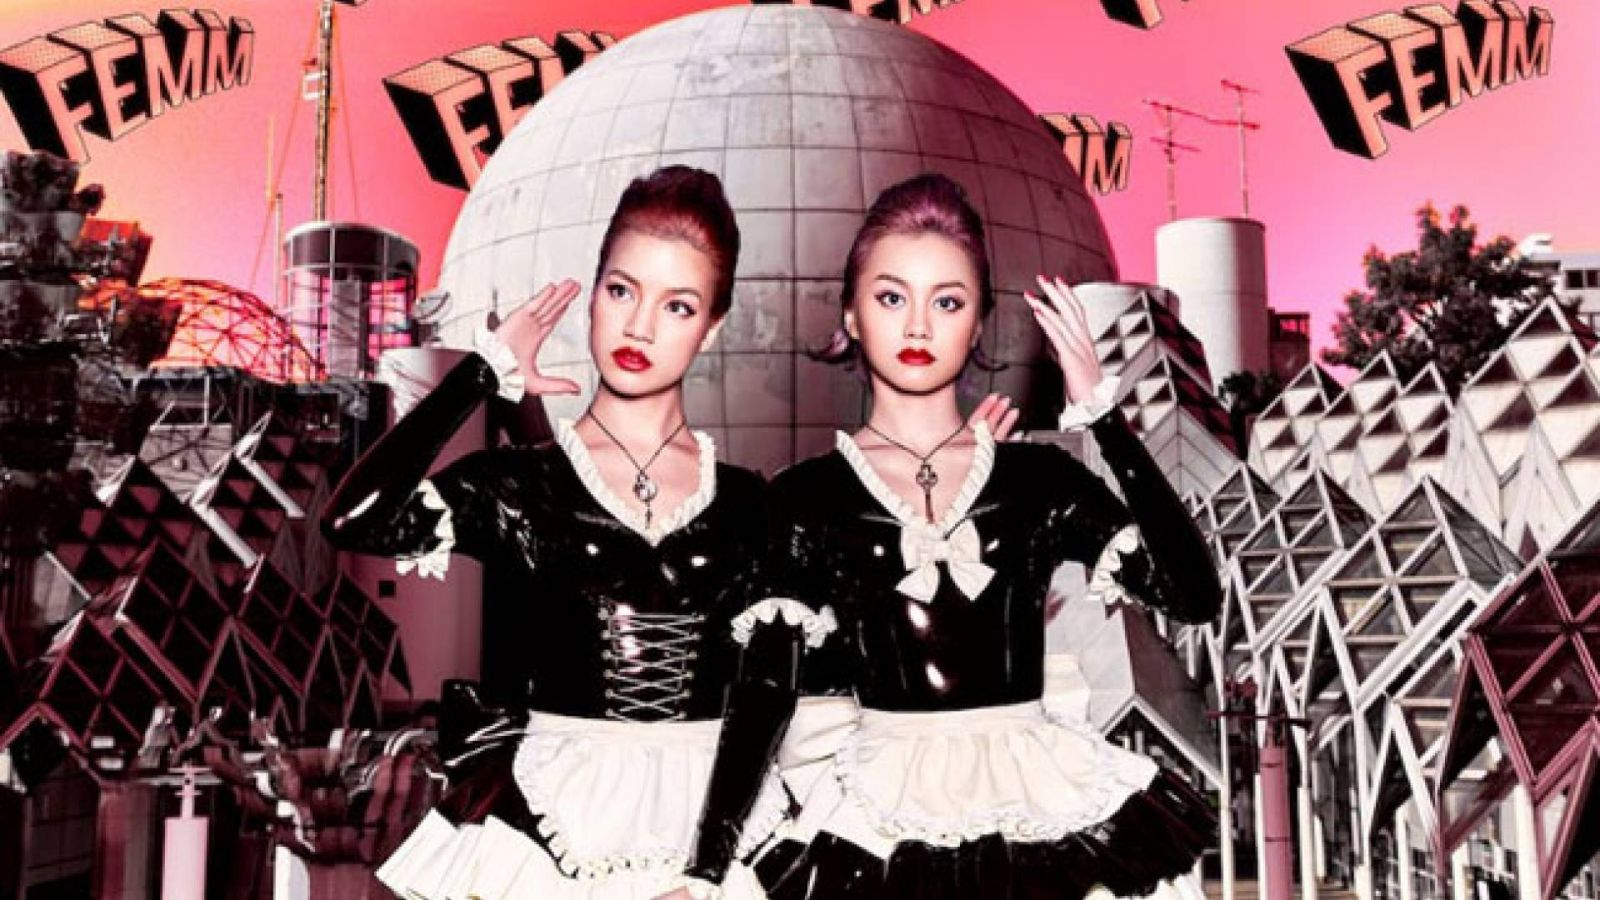 FEMM © FEMM. All rights reserved.